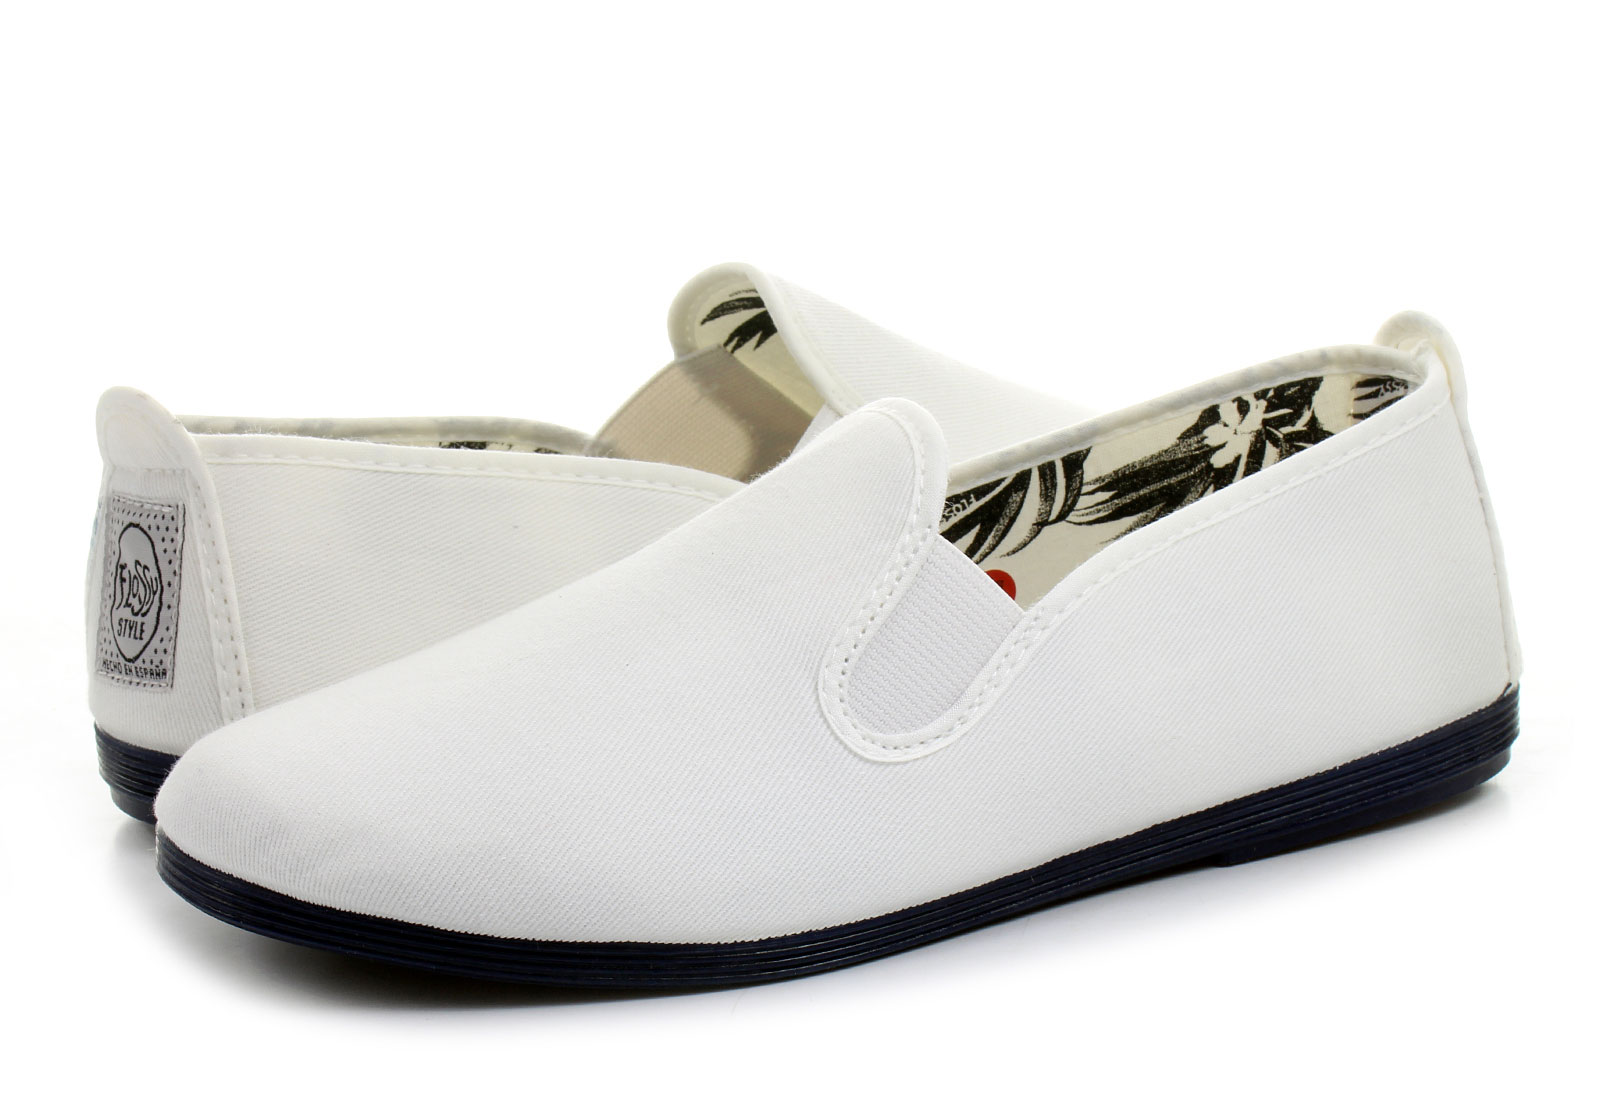 flossy shoes lunaw 101nv shop for